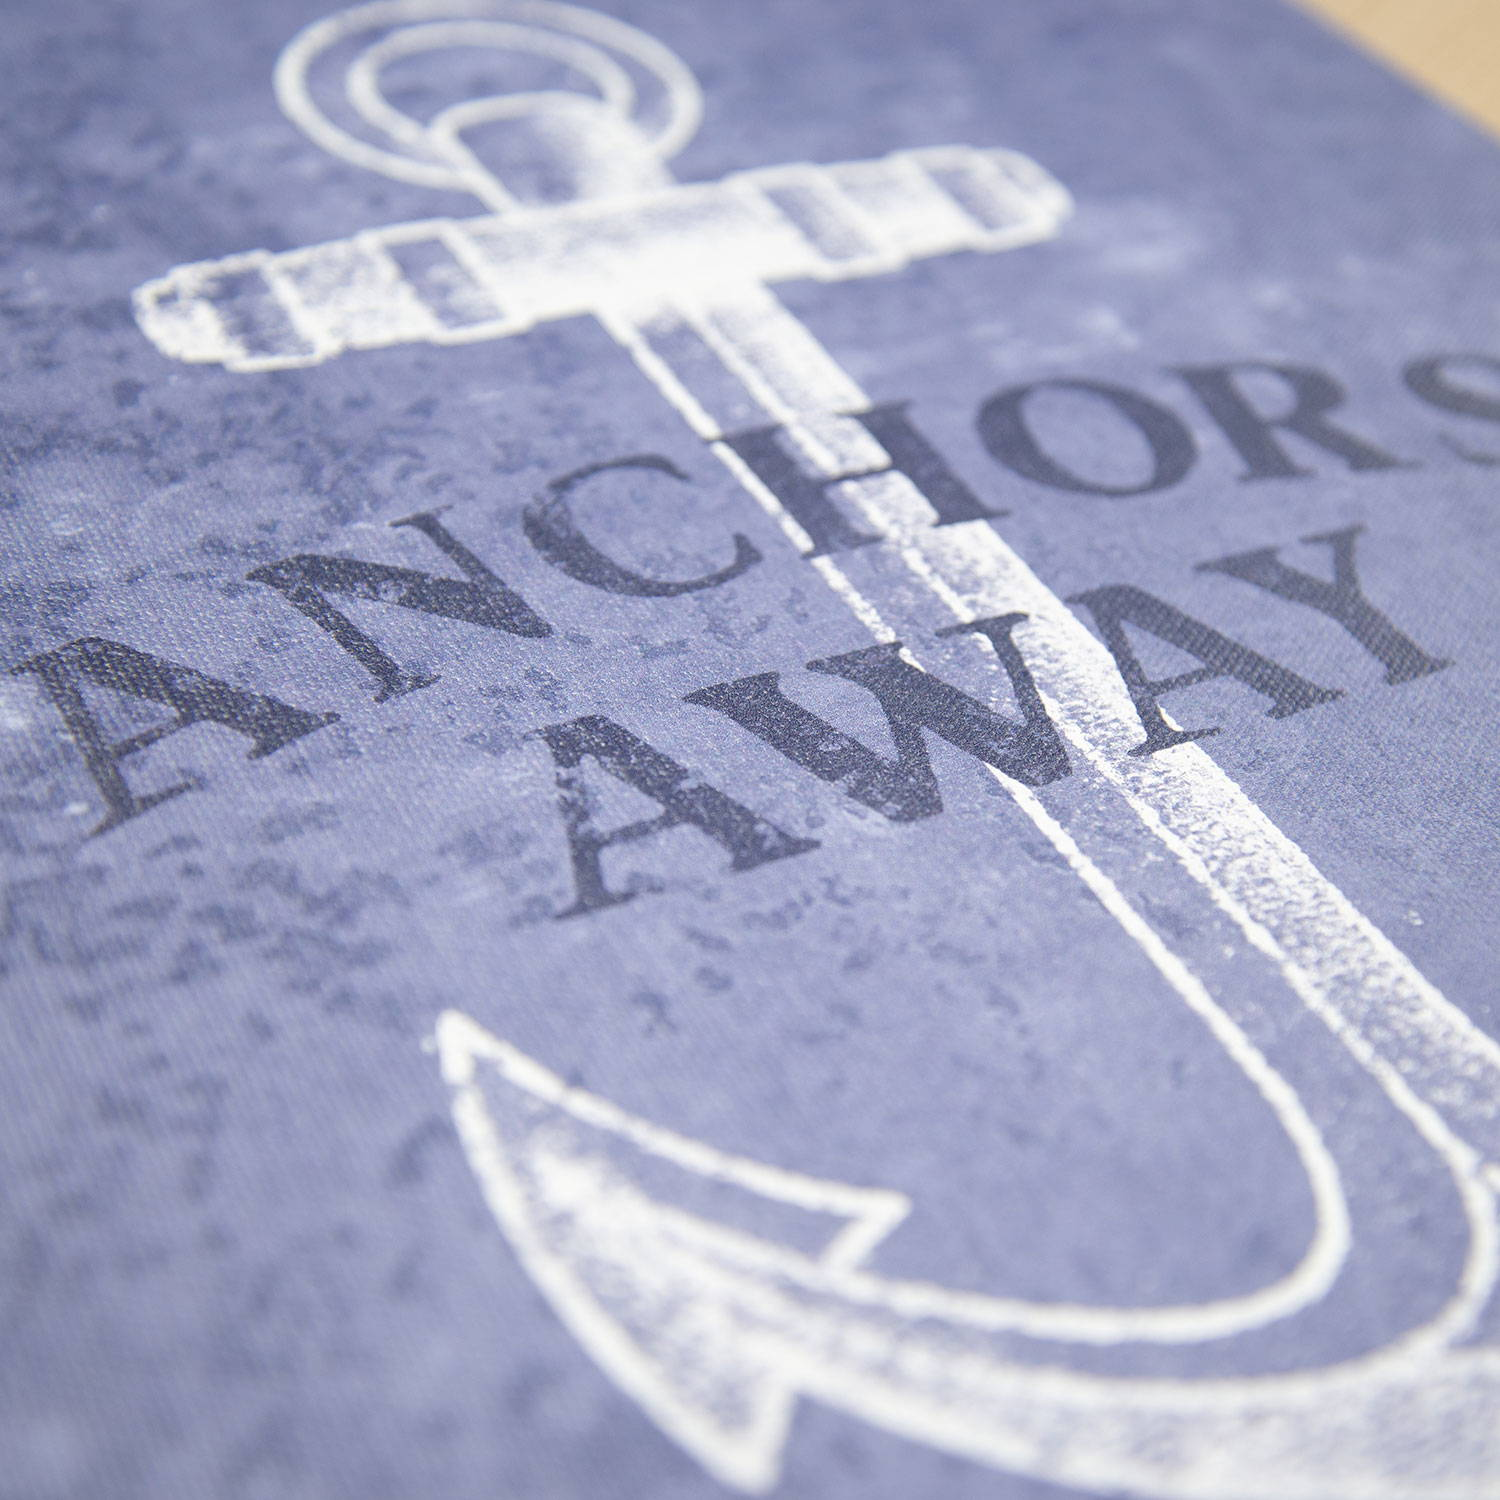 Conquest Maps Anchors Away Canvas Art